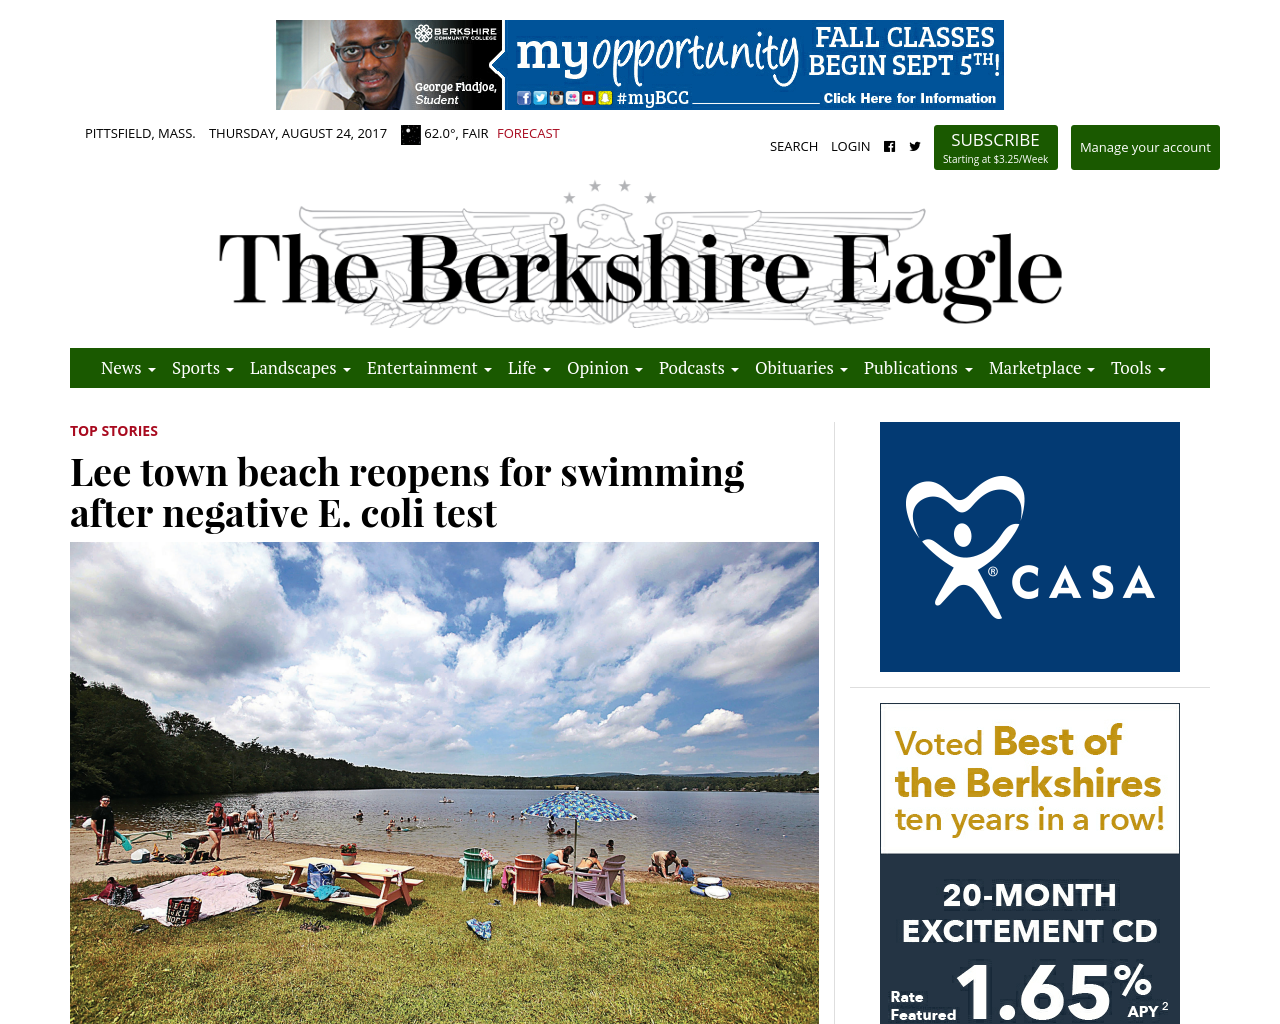 The-Berkshire-Eagle-Advertising-Reviews-Pricing